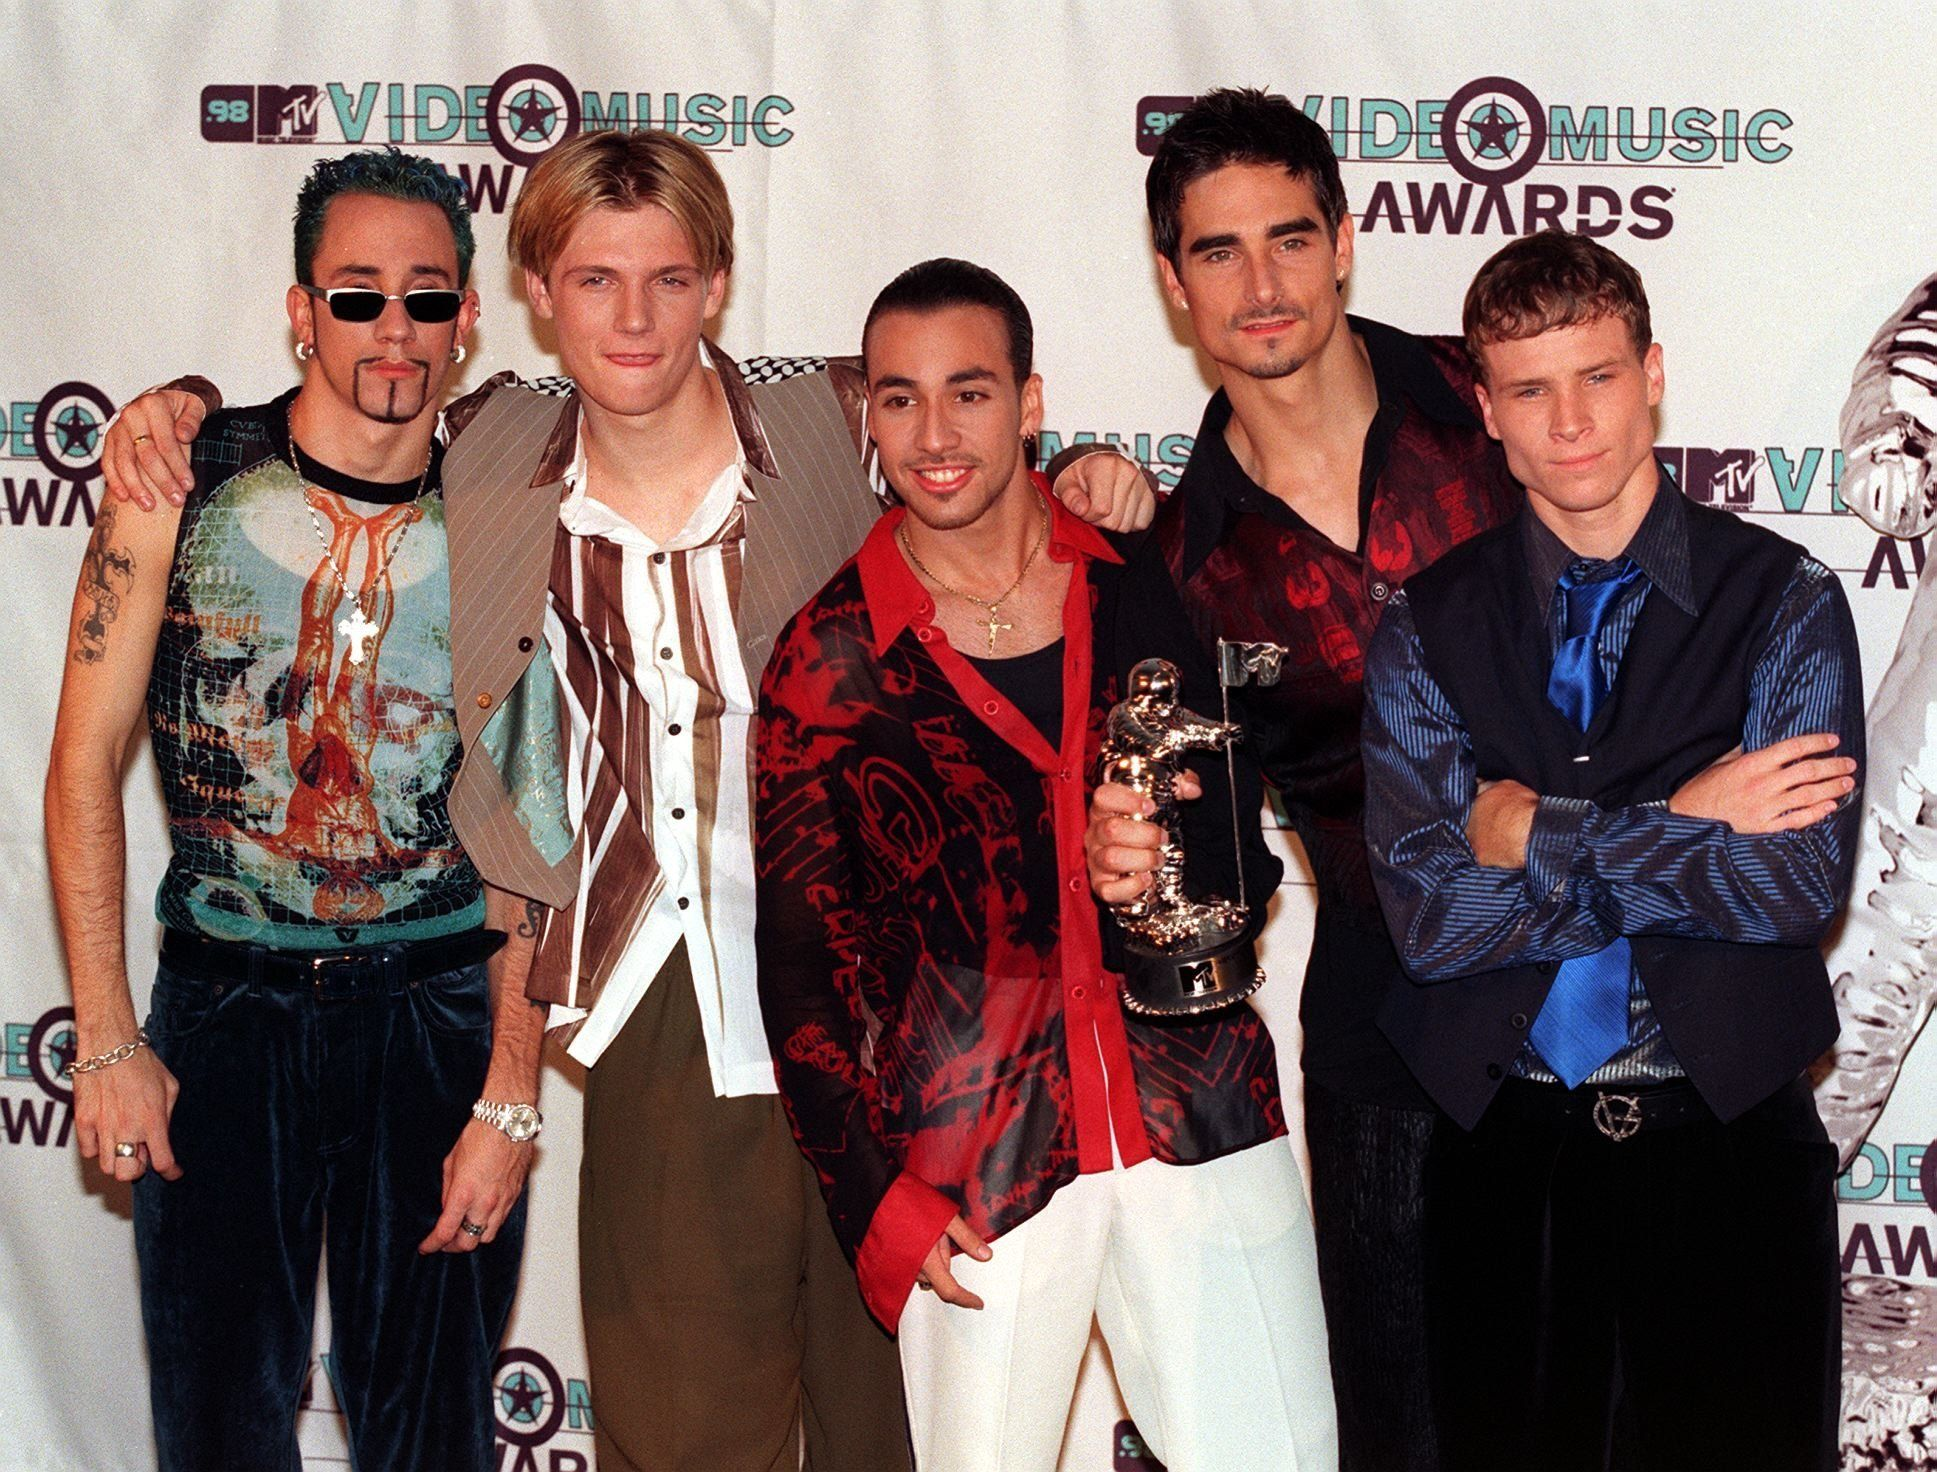 LOS ANGELES, UNITED STATES:  Members of the musical group Backstreet Boys pose after winning the award for Best Group Video for 'Everybody - Backstreet's Back' during the 1998 MTV Video Music Awards in Los Angeles, CA, 10 September.     AFP PHOTO  Vince BUCCI (Photo credit should read Vince Bucci/AFP/Getty Images)